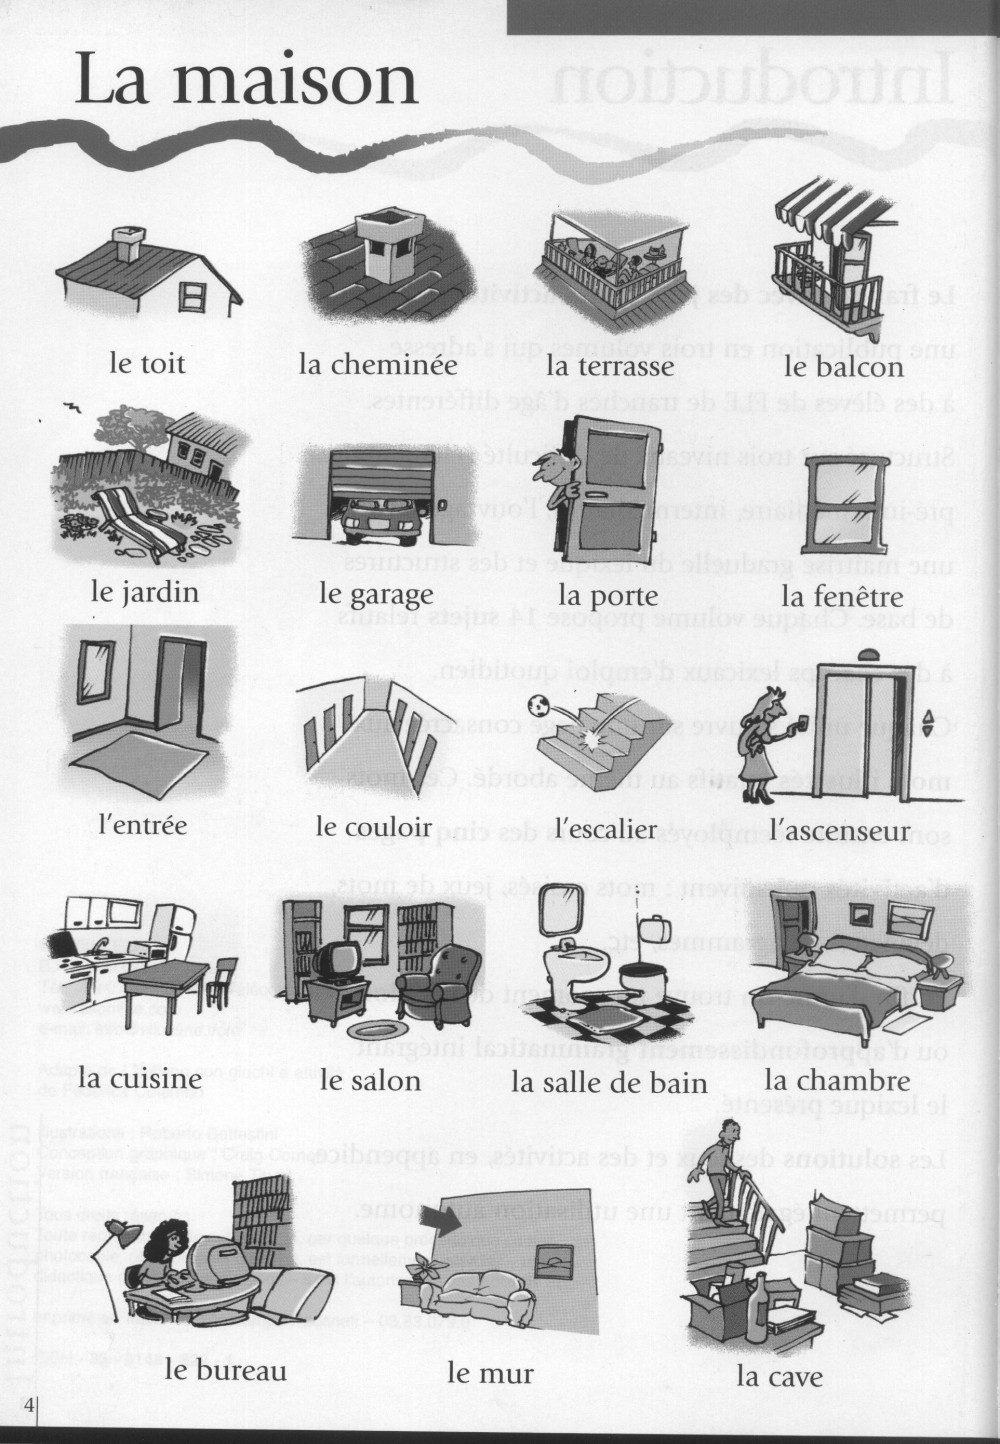 Communication fr vocabulaire for Vocabulario cocina frances